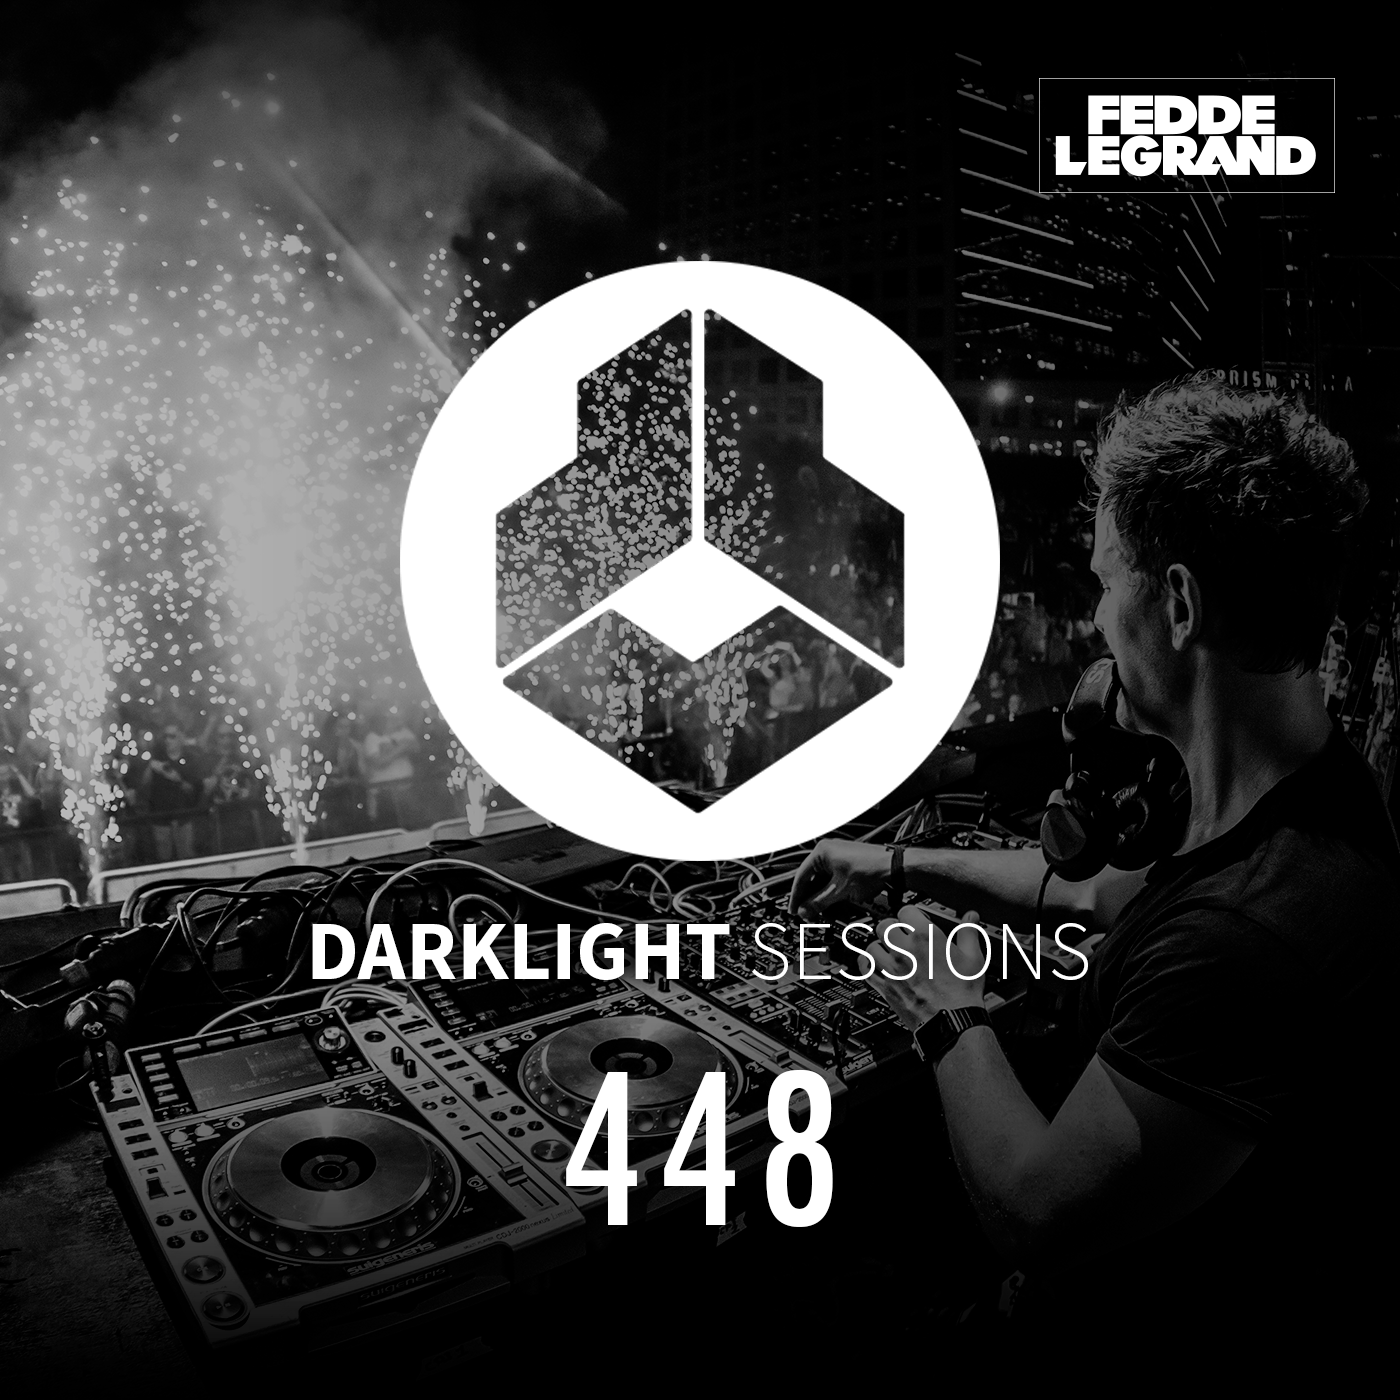 Darklight Sessions 448